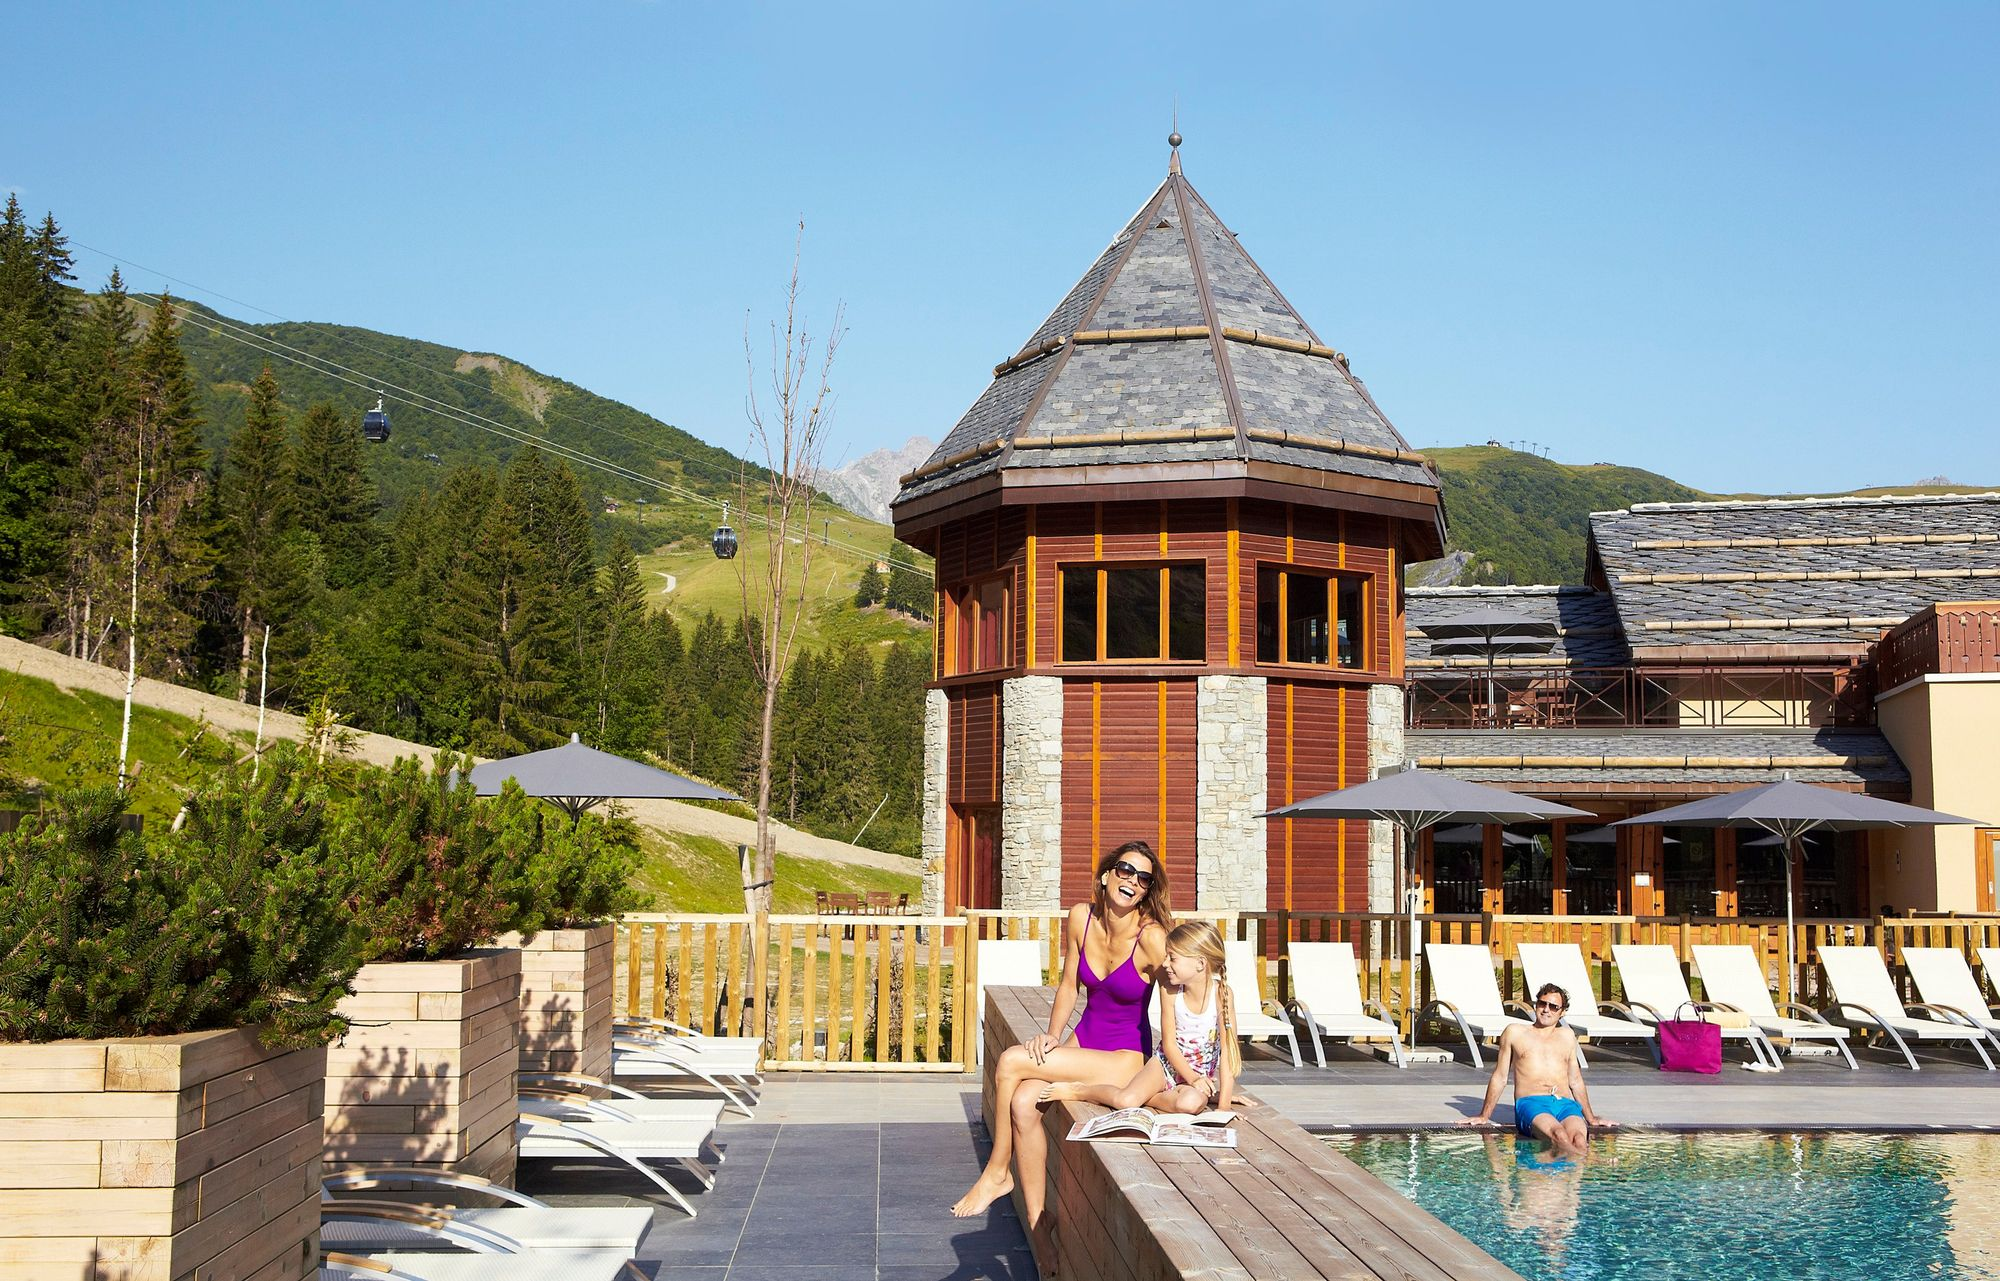 Les chalets club med r sidences valmorel for Piscine valmorel